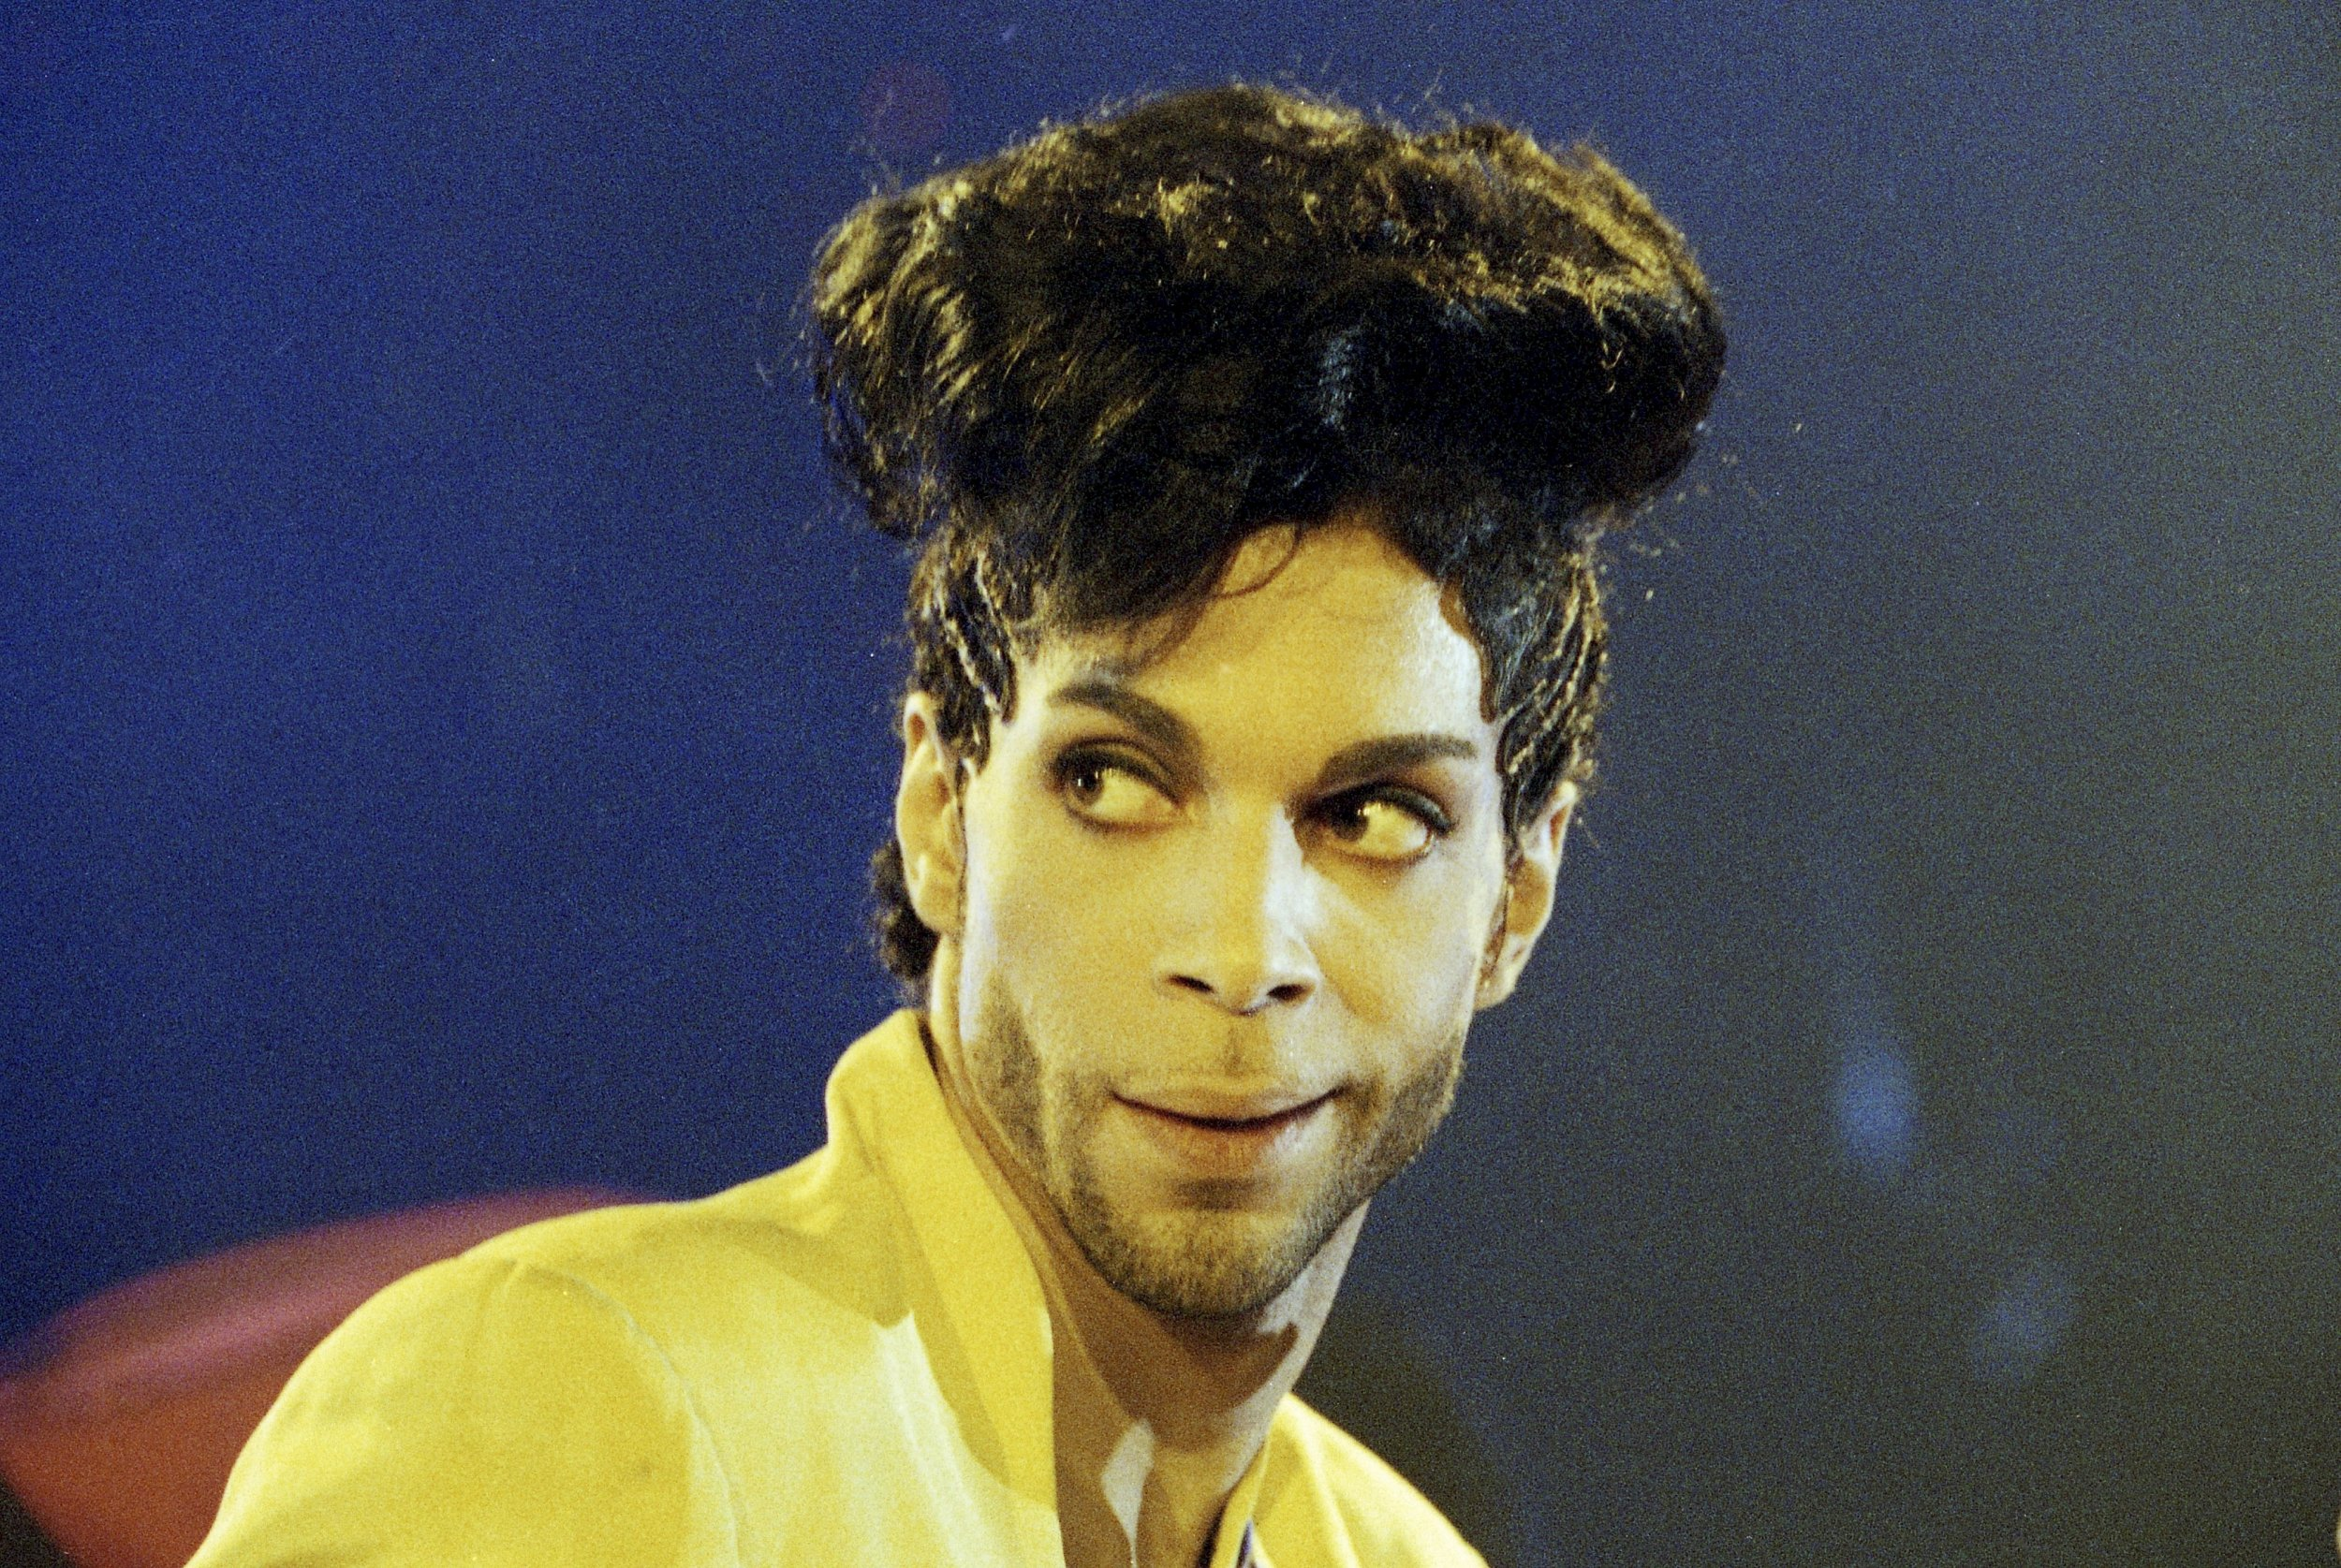 Musicians Battle YouTube for Revenue as Prince Videos Disappear